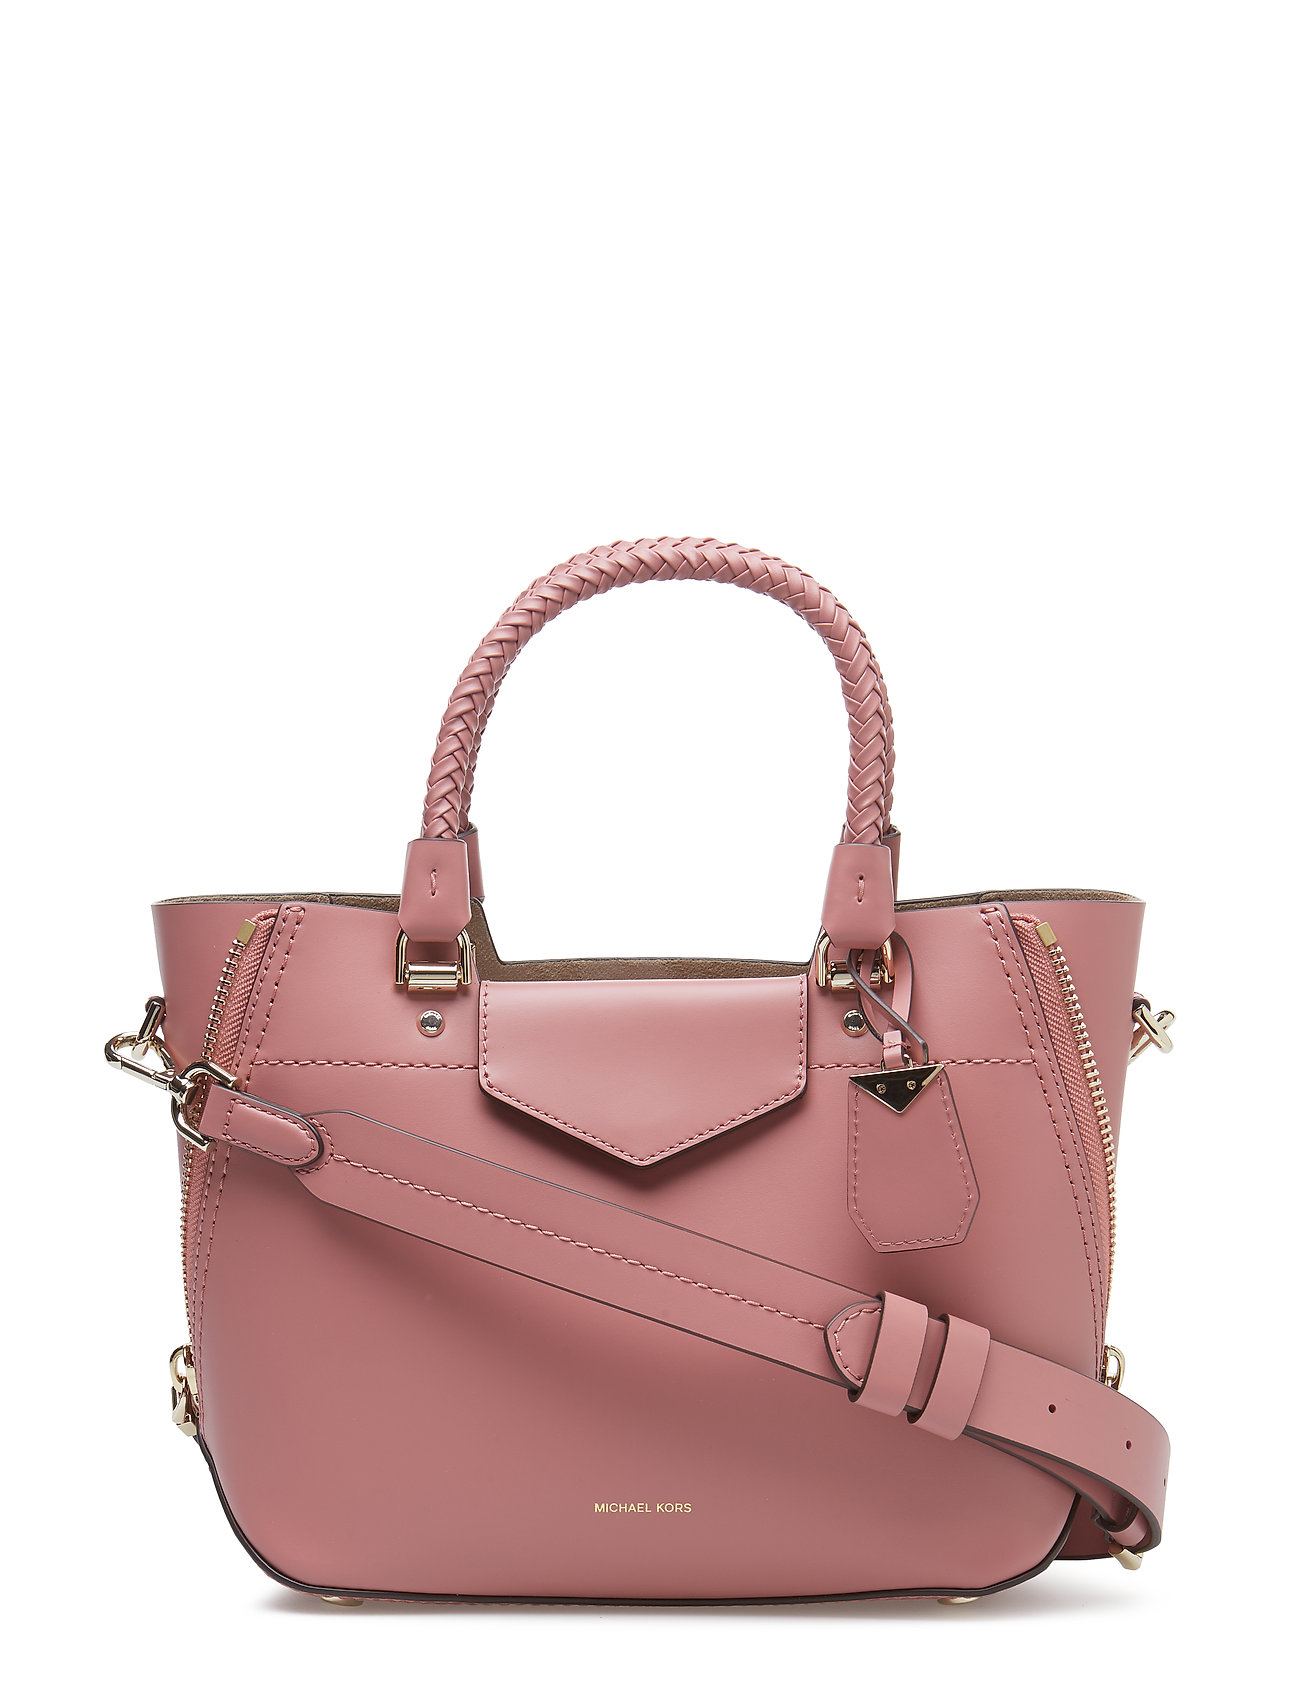 a3b19c8bd66c8 MICHAEL KORS Taschen - Md Messenger Bags Top Handle Bags Pink MICHAEL KORS  BAGS